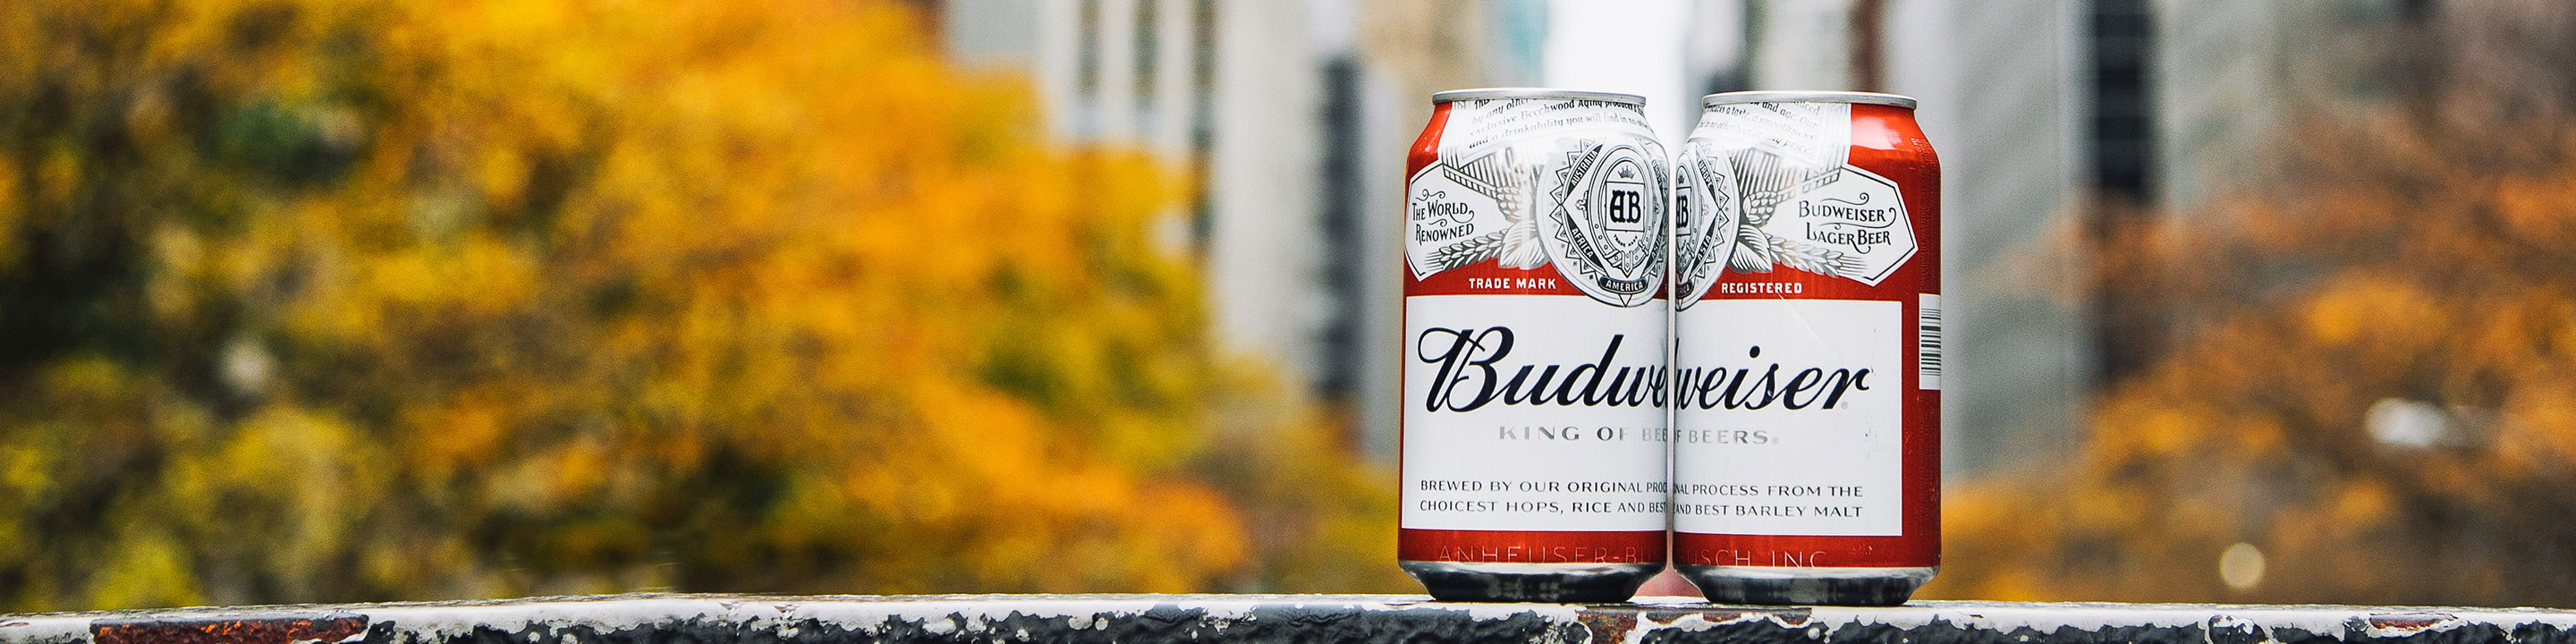 Buy Budweiser online from nearby liquor stores via Minibar Delivery.